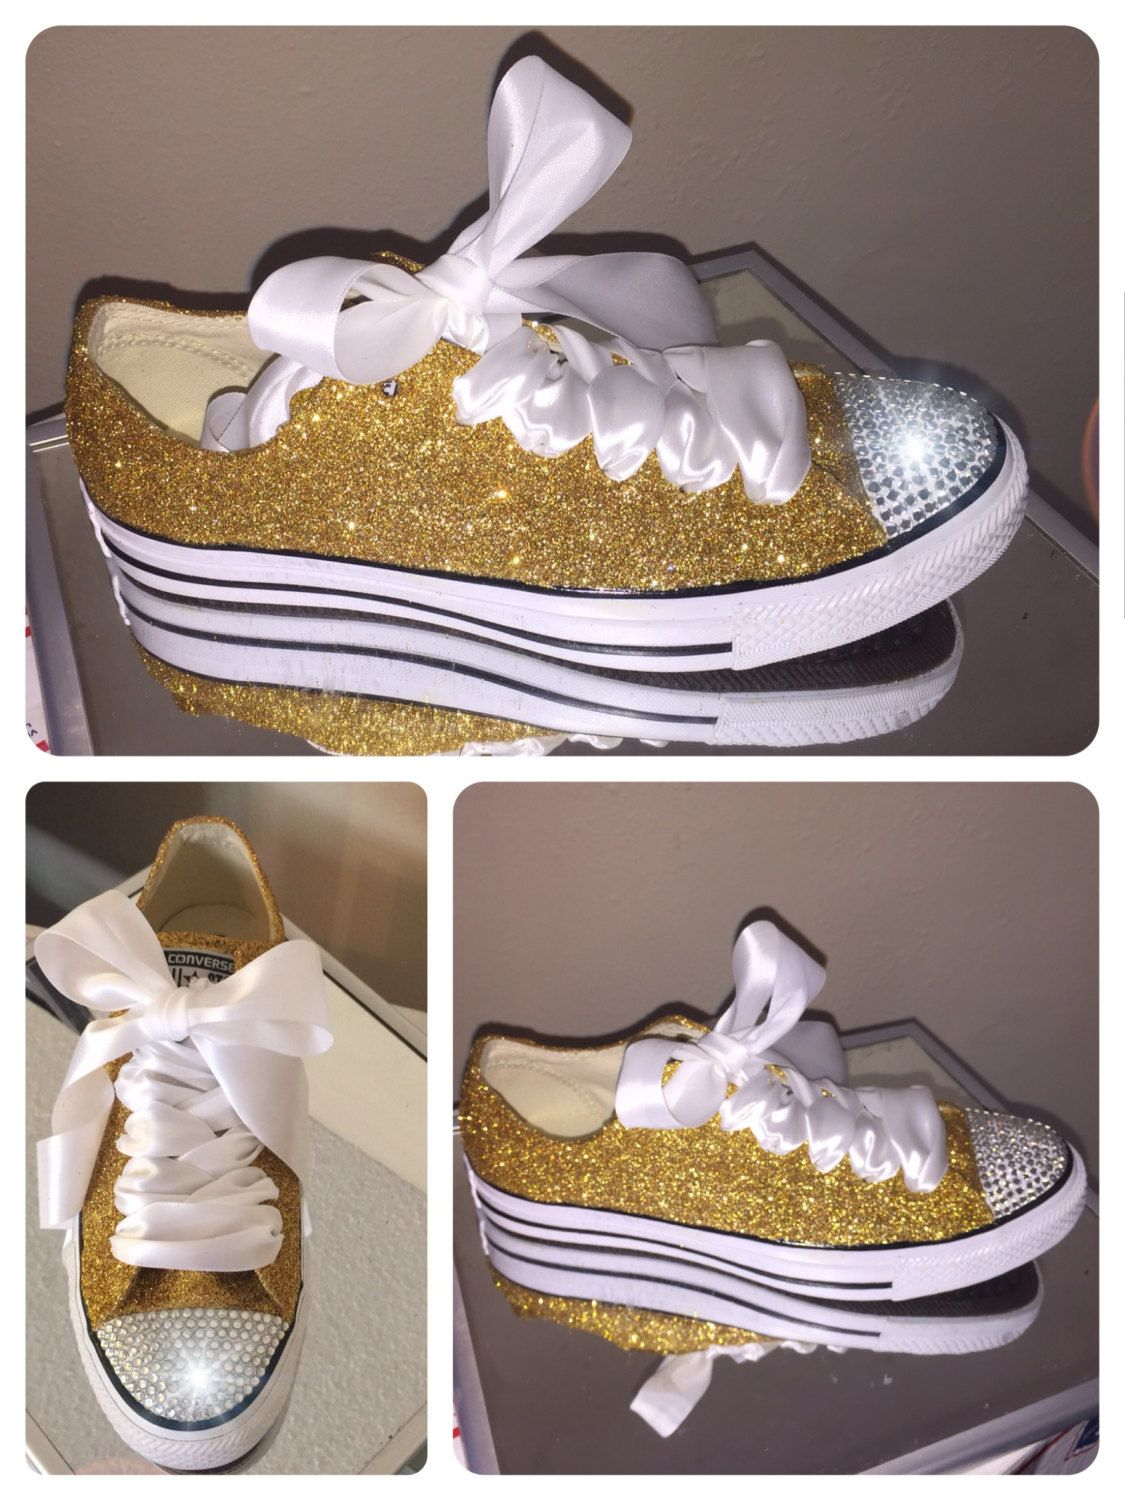 e09daa512cd4 Sparkly Gold PICK YOUR shade in Glitter Swarovski crystals rhinestones  CONVERSE all star sneakers tennis shoes by CrystalCleatss on Etsy For  10  off use ...